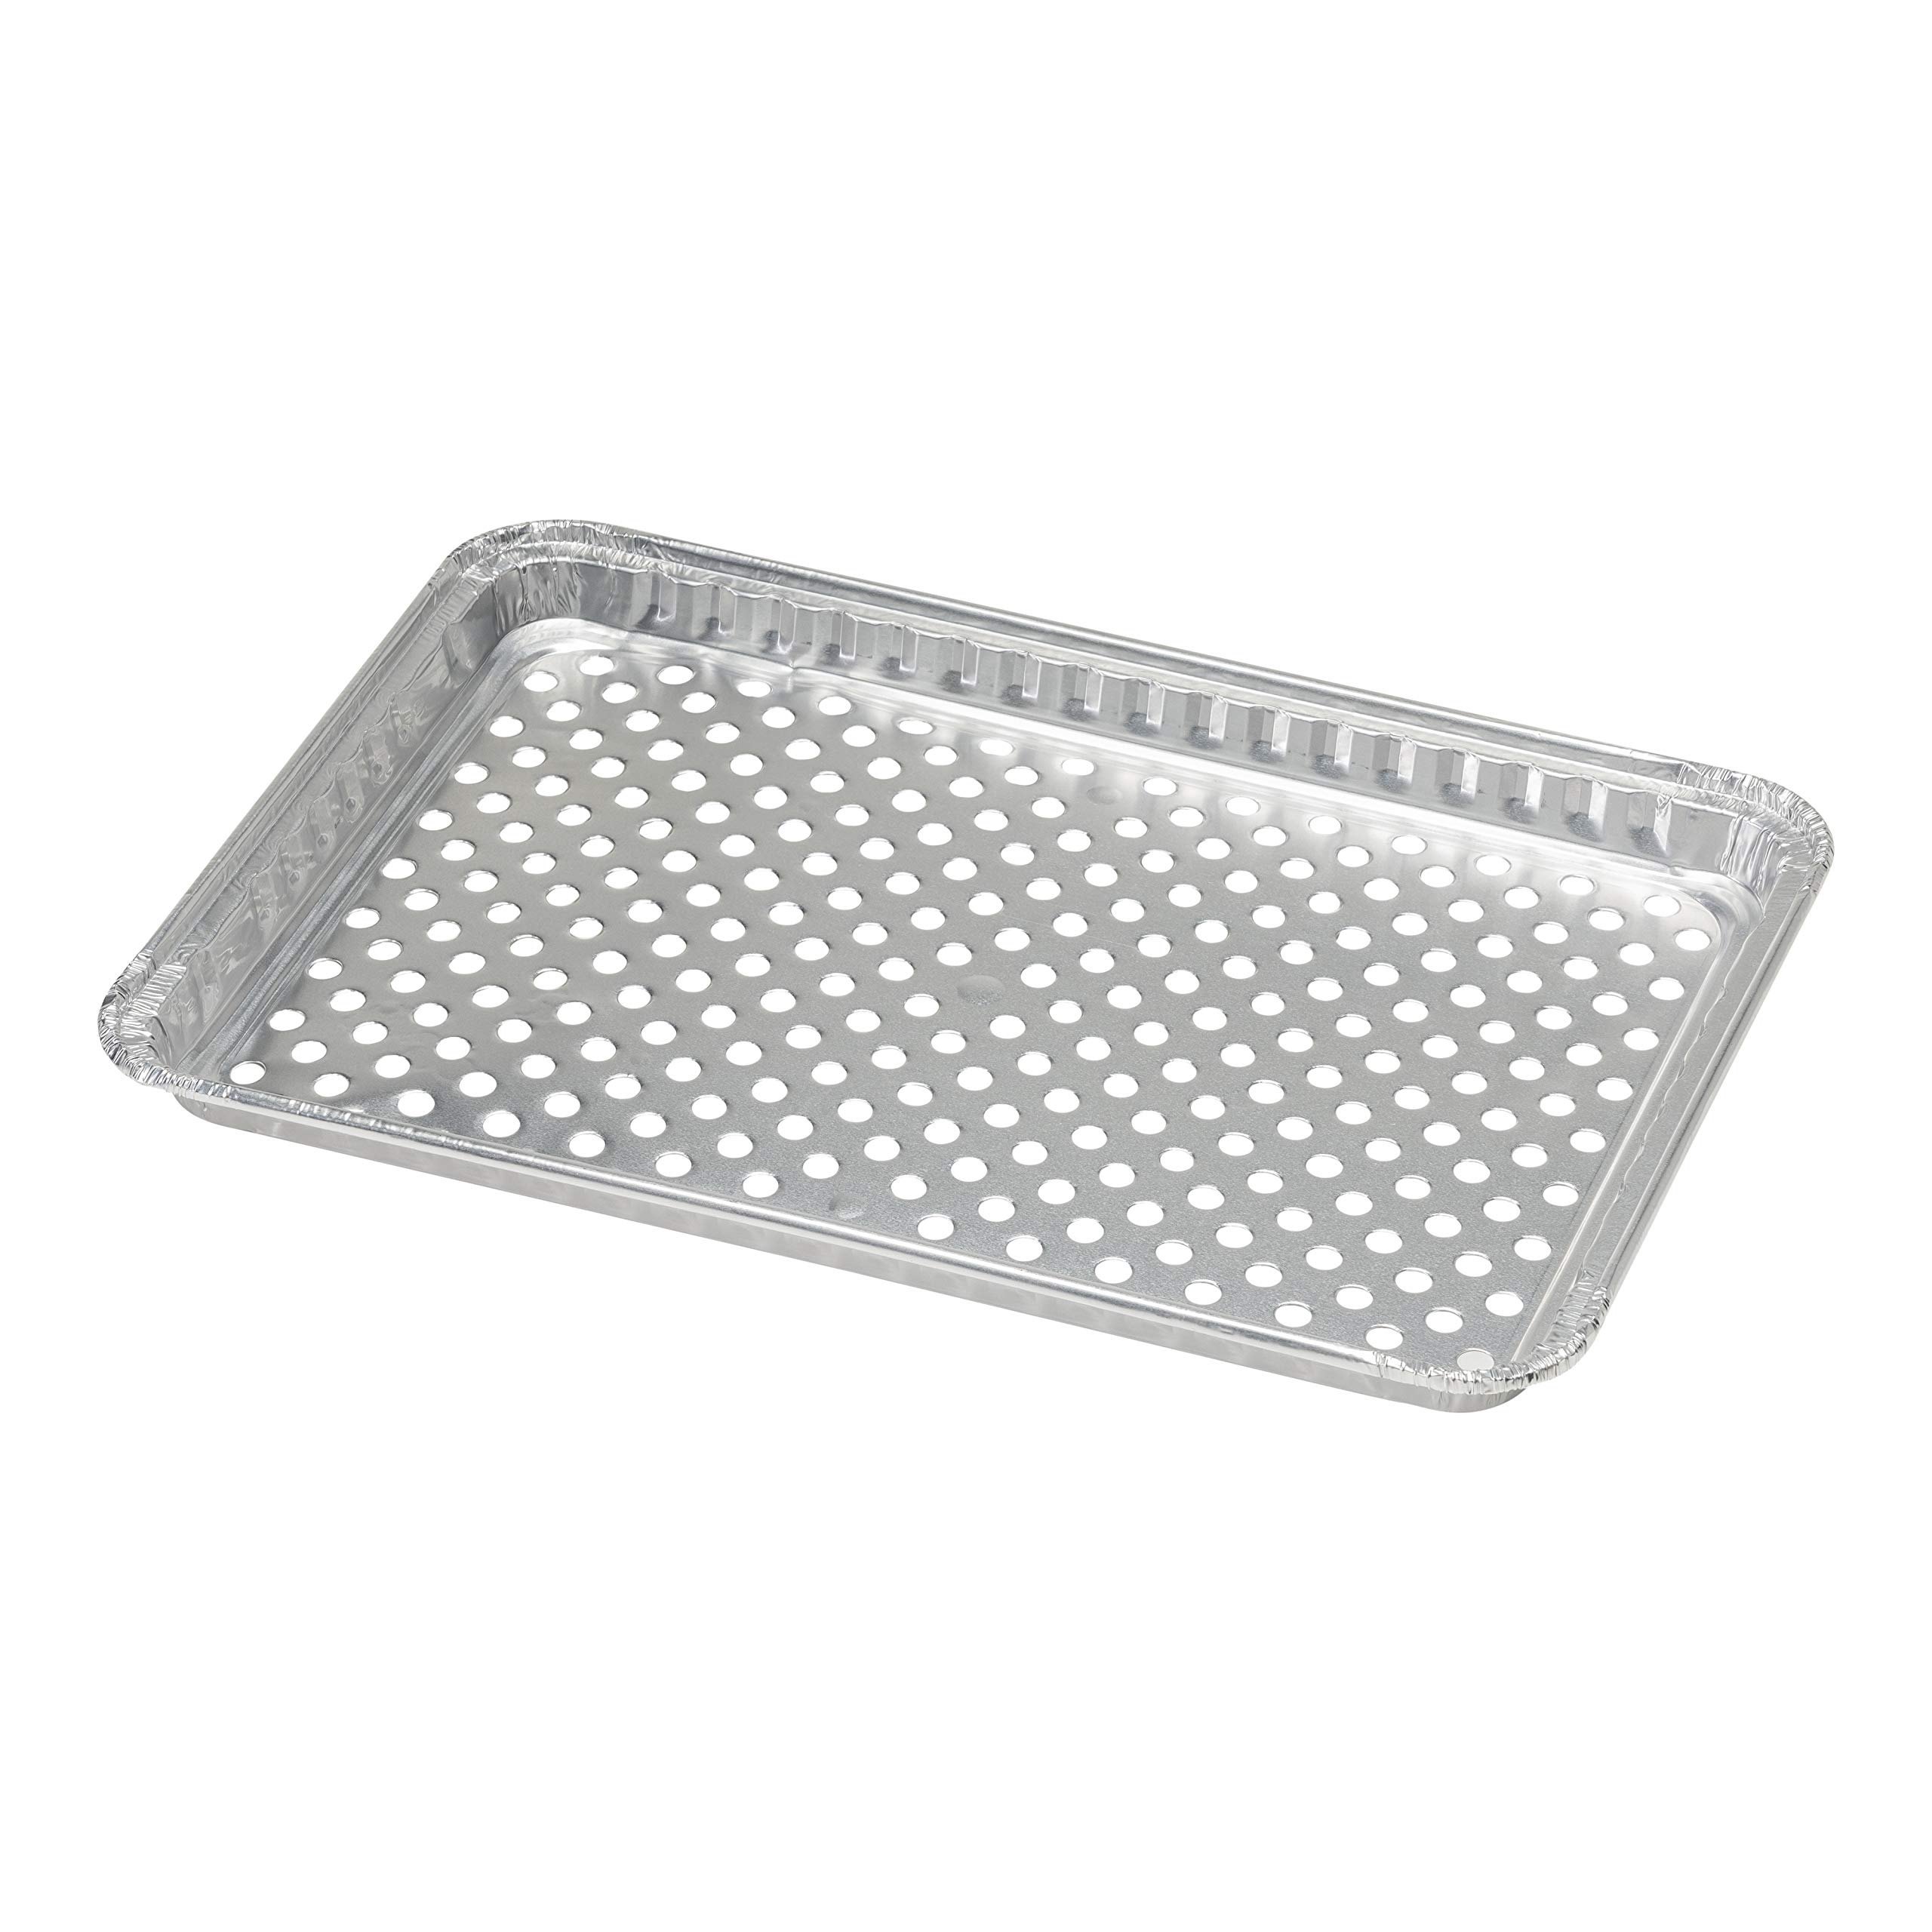 pinkada 24-Pack Disposable Aluminum Foil BBQ Grill Topper Pan Prevents Food from Falling into The Grill or Sticking to The Grate No Clean Up Necessary - Perfect for Camping and Outdoor Use